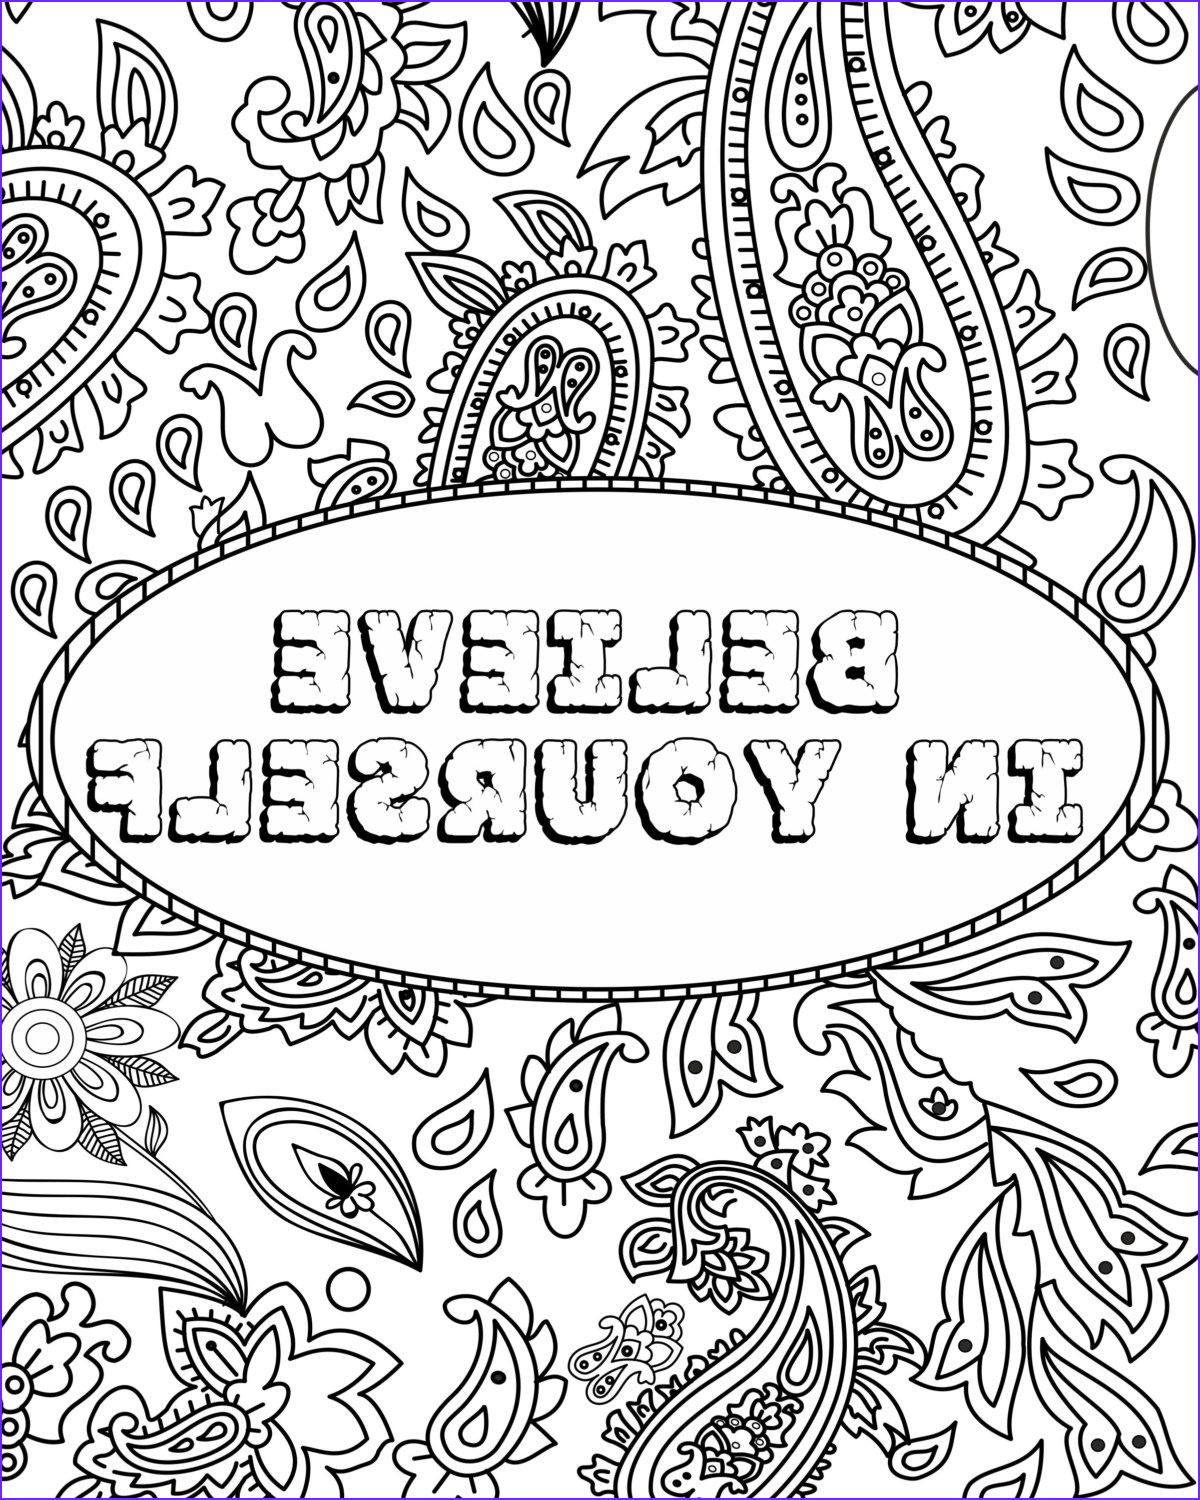 Inspirational Quotes Coloring Pages Elegant Photography Funny Quote Coloring Pages at Getdrawings